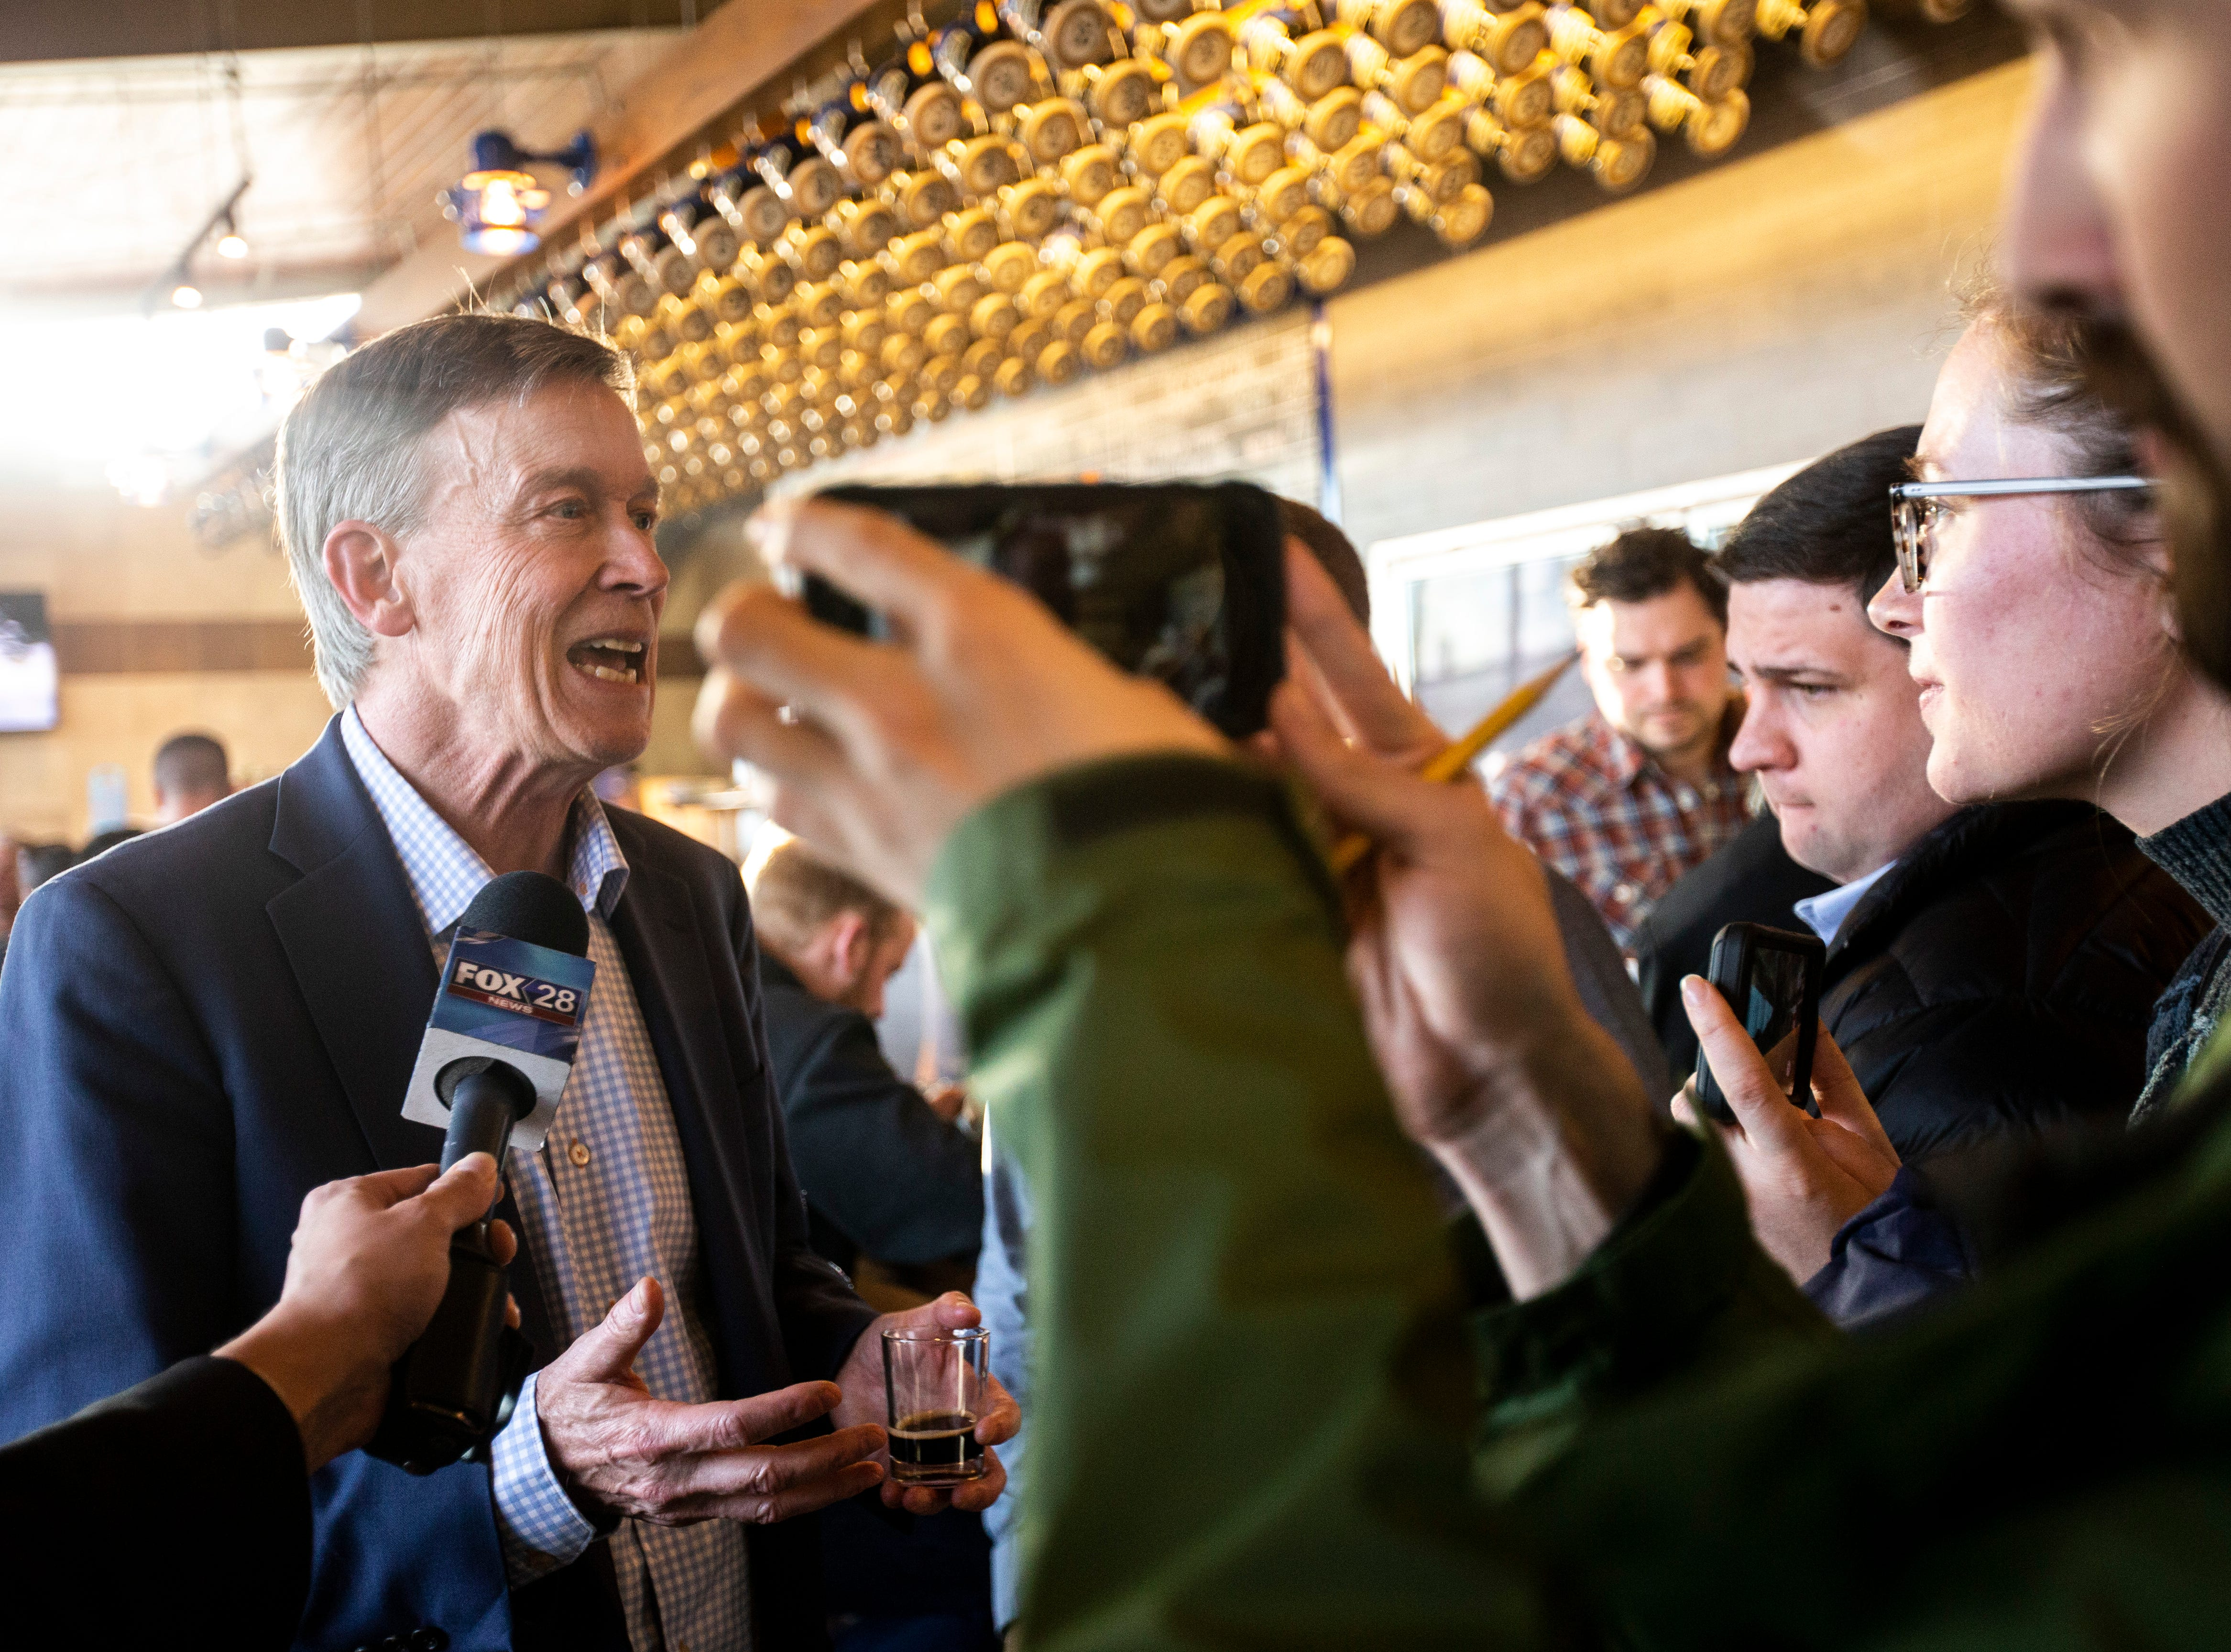 Democratic presidential candidate and former Colorado Gov. John Hickenlooper speaks to reporters after an event on Friday, April 12, 2019, at Backpocket Brewing in Coralville, Iowa.